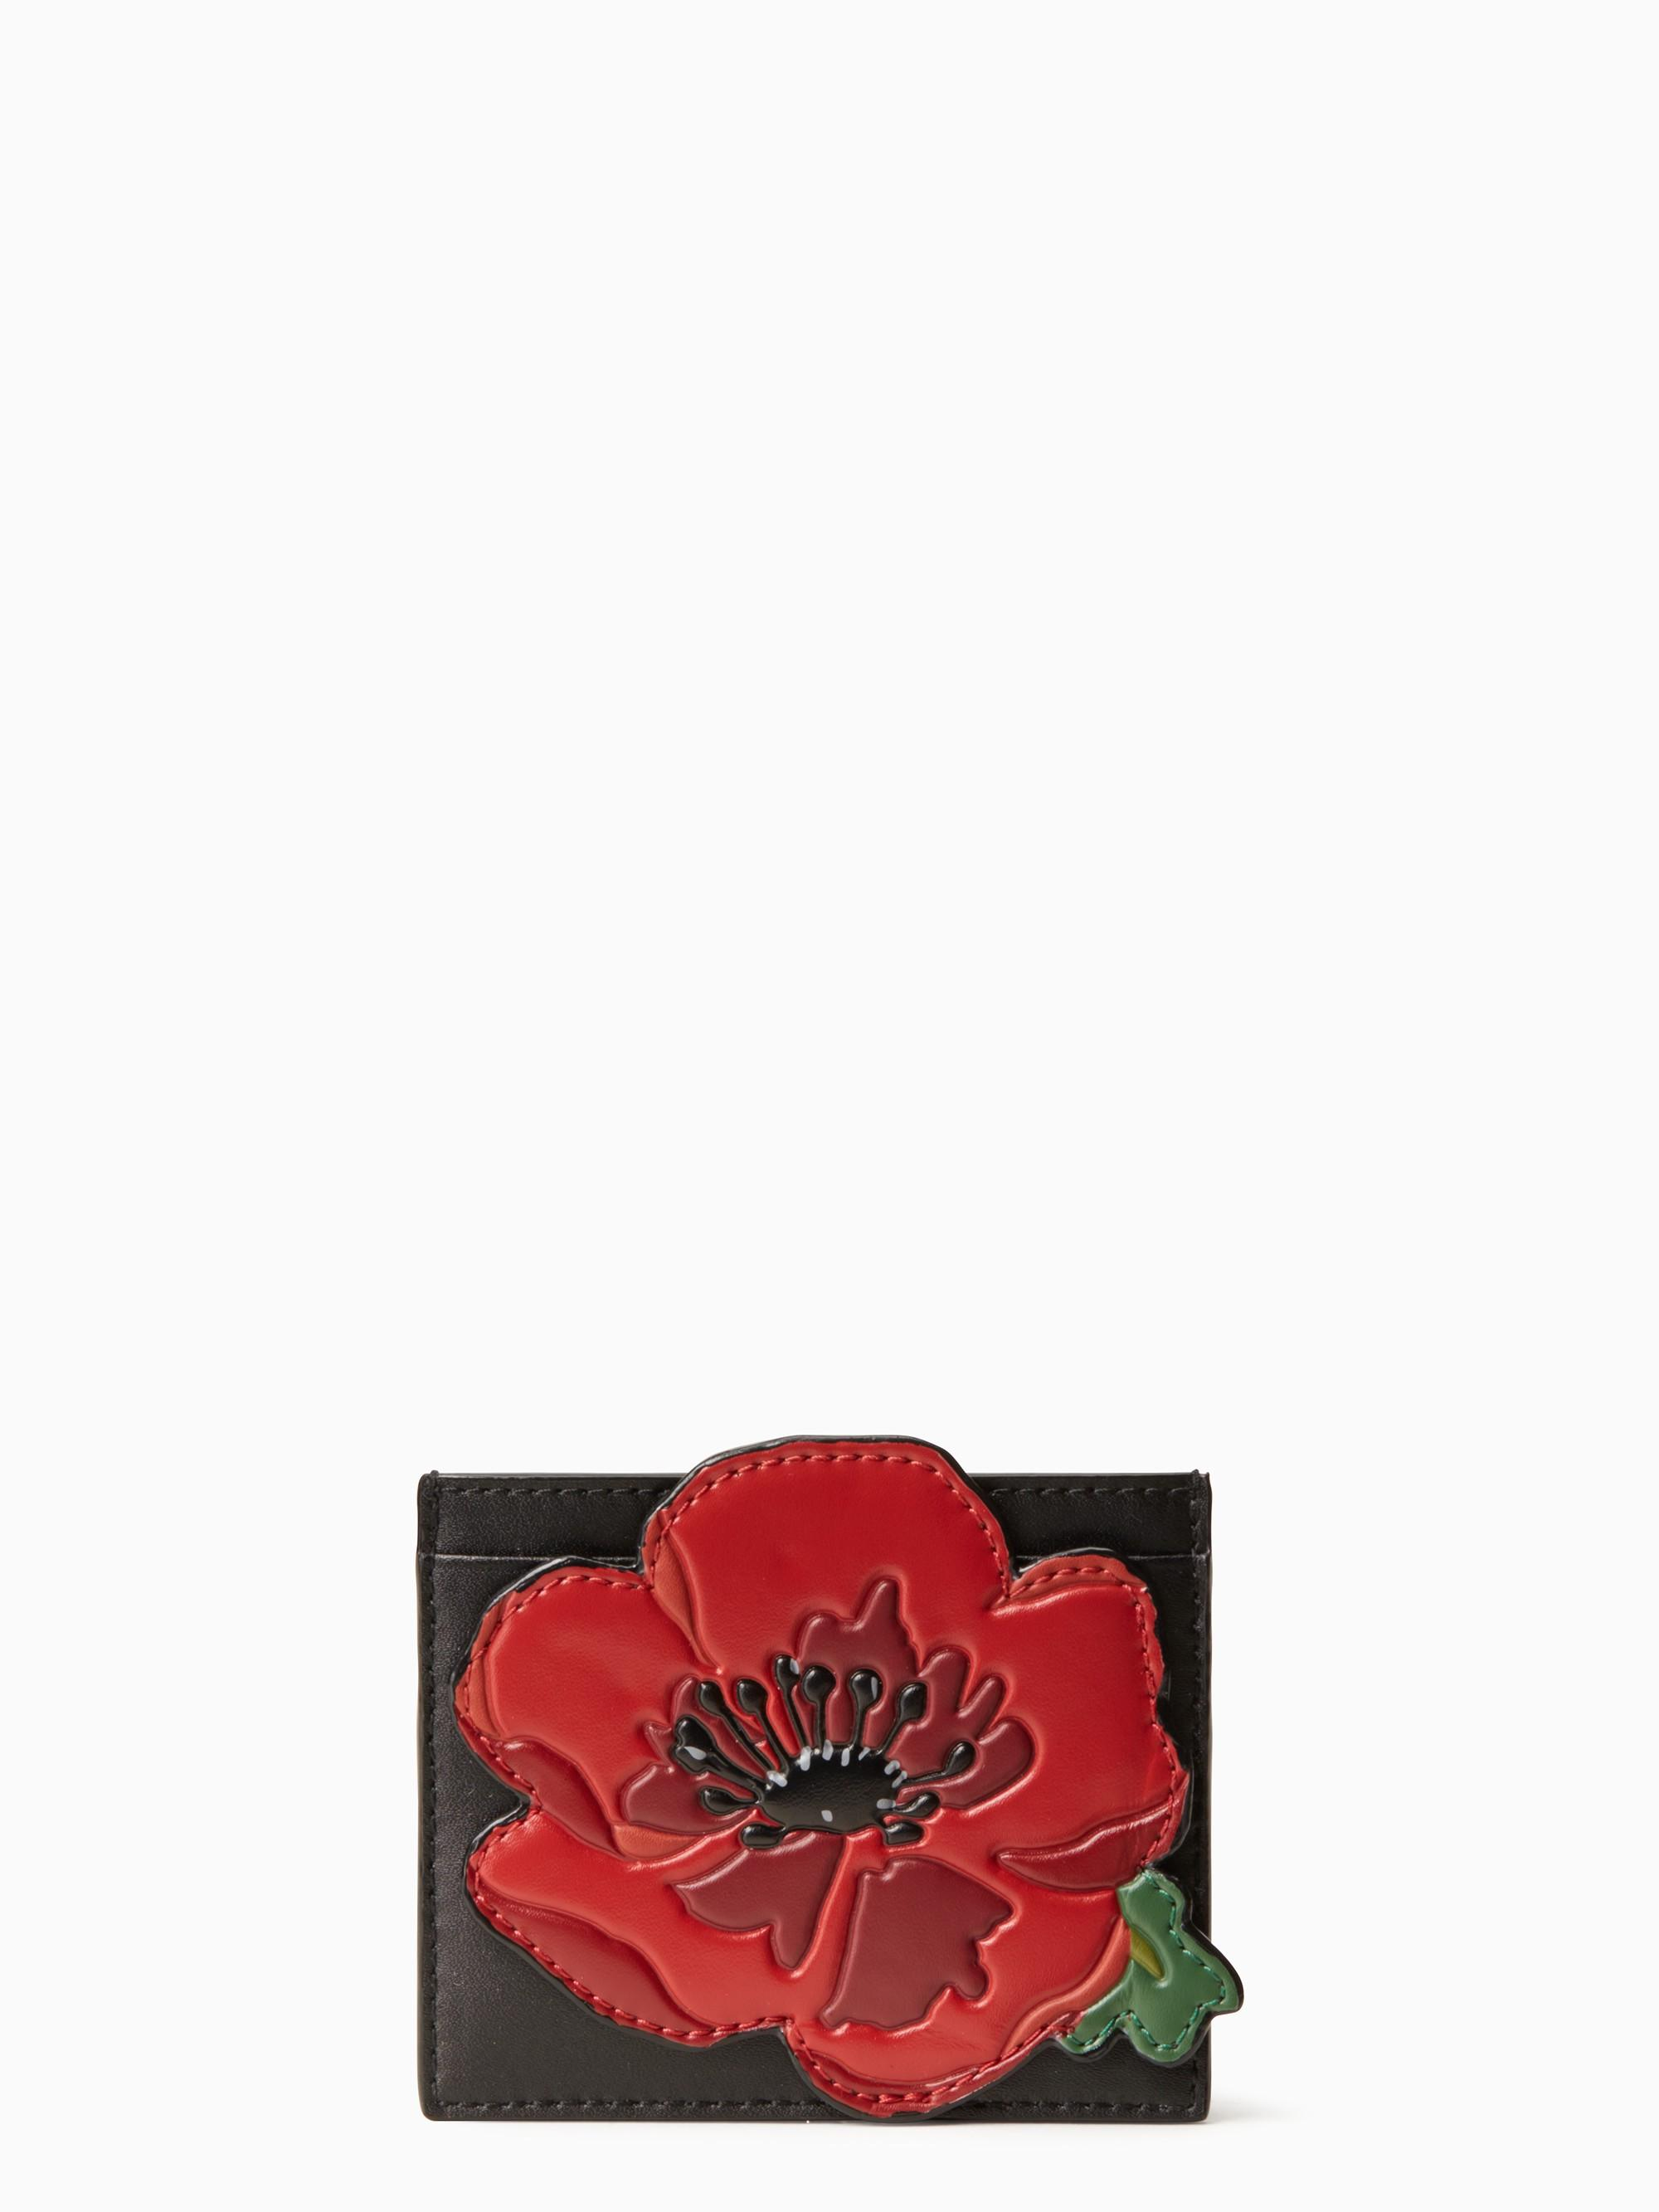 Kate Spade Ooh La La Poppy Applique Card Holder